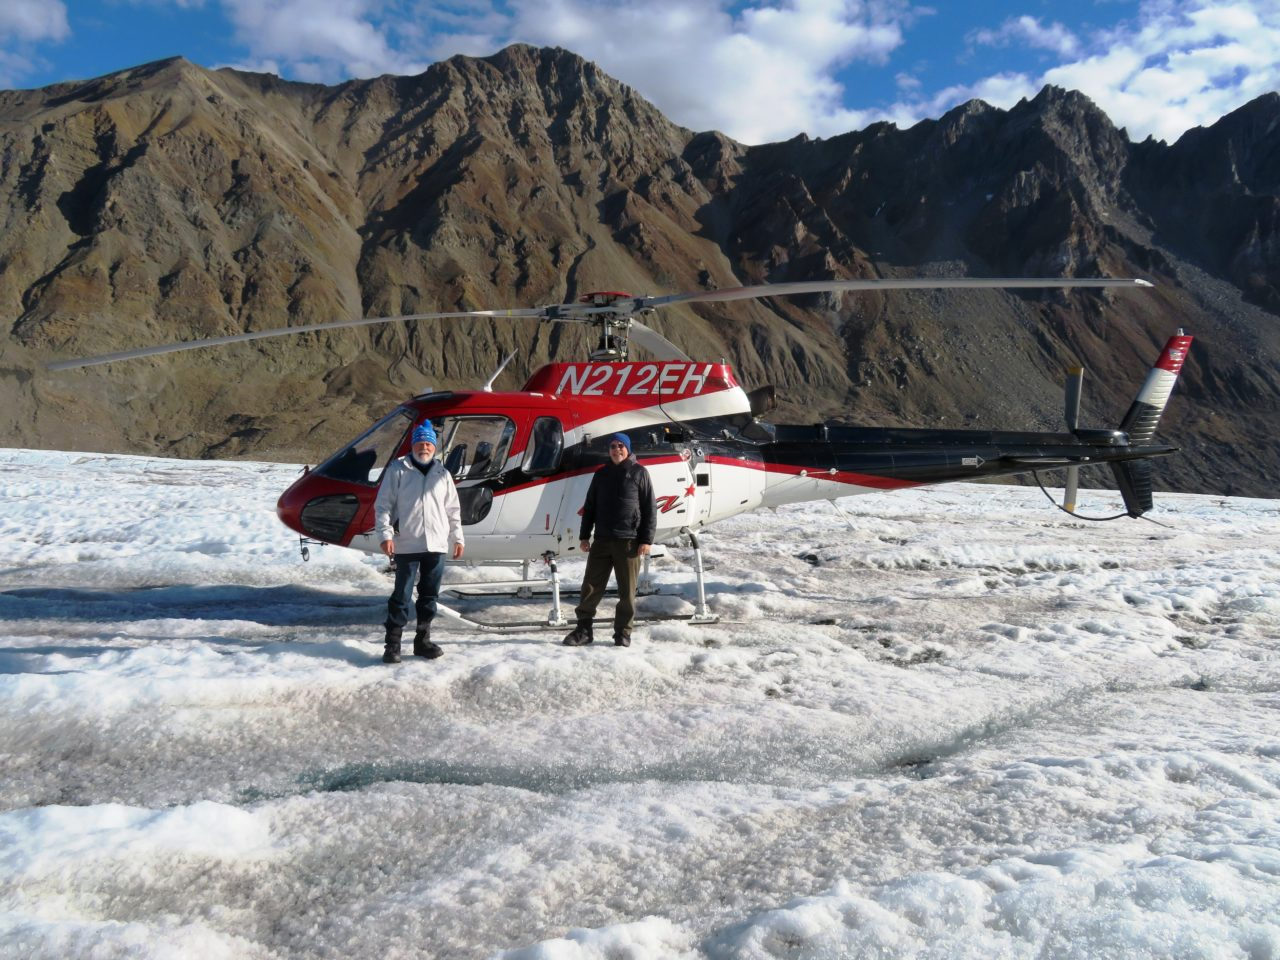 Helicopter landing on a glacier during our Alaska Cruise with Princess Cruises